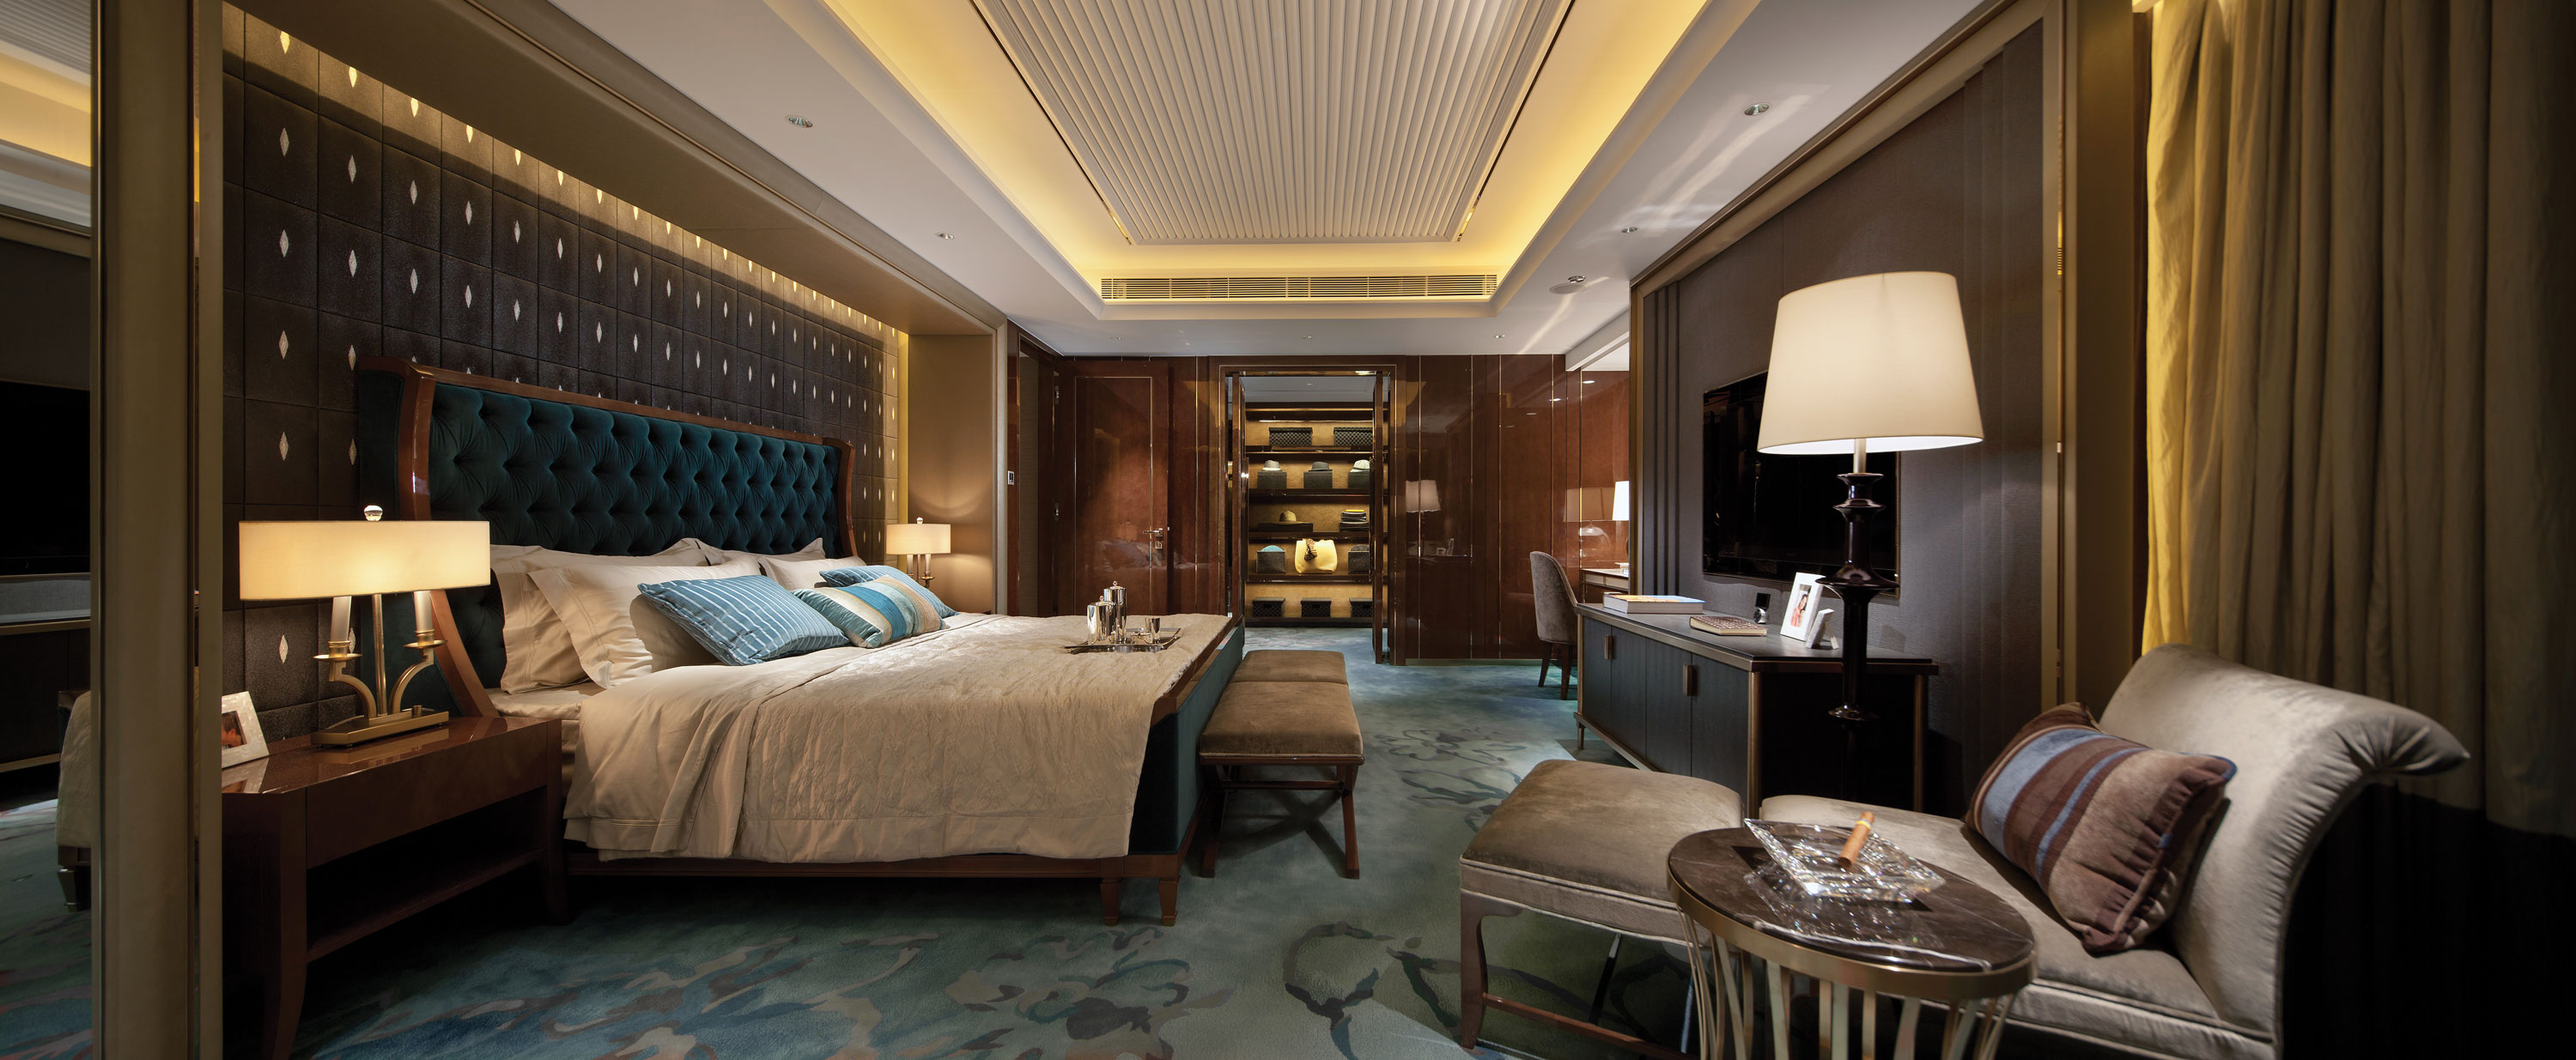 opulent blue and brown bedroom panorama interior design ideas. Black Bedroom Furniture Sets. Home Design Ideas